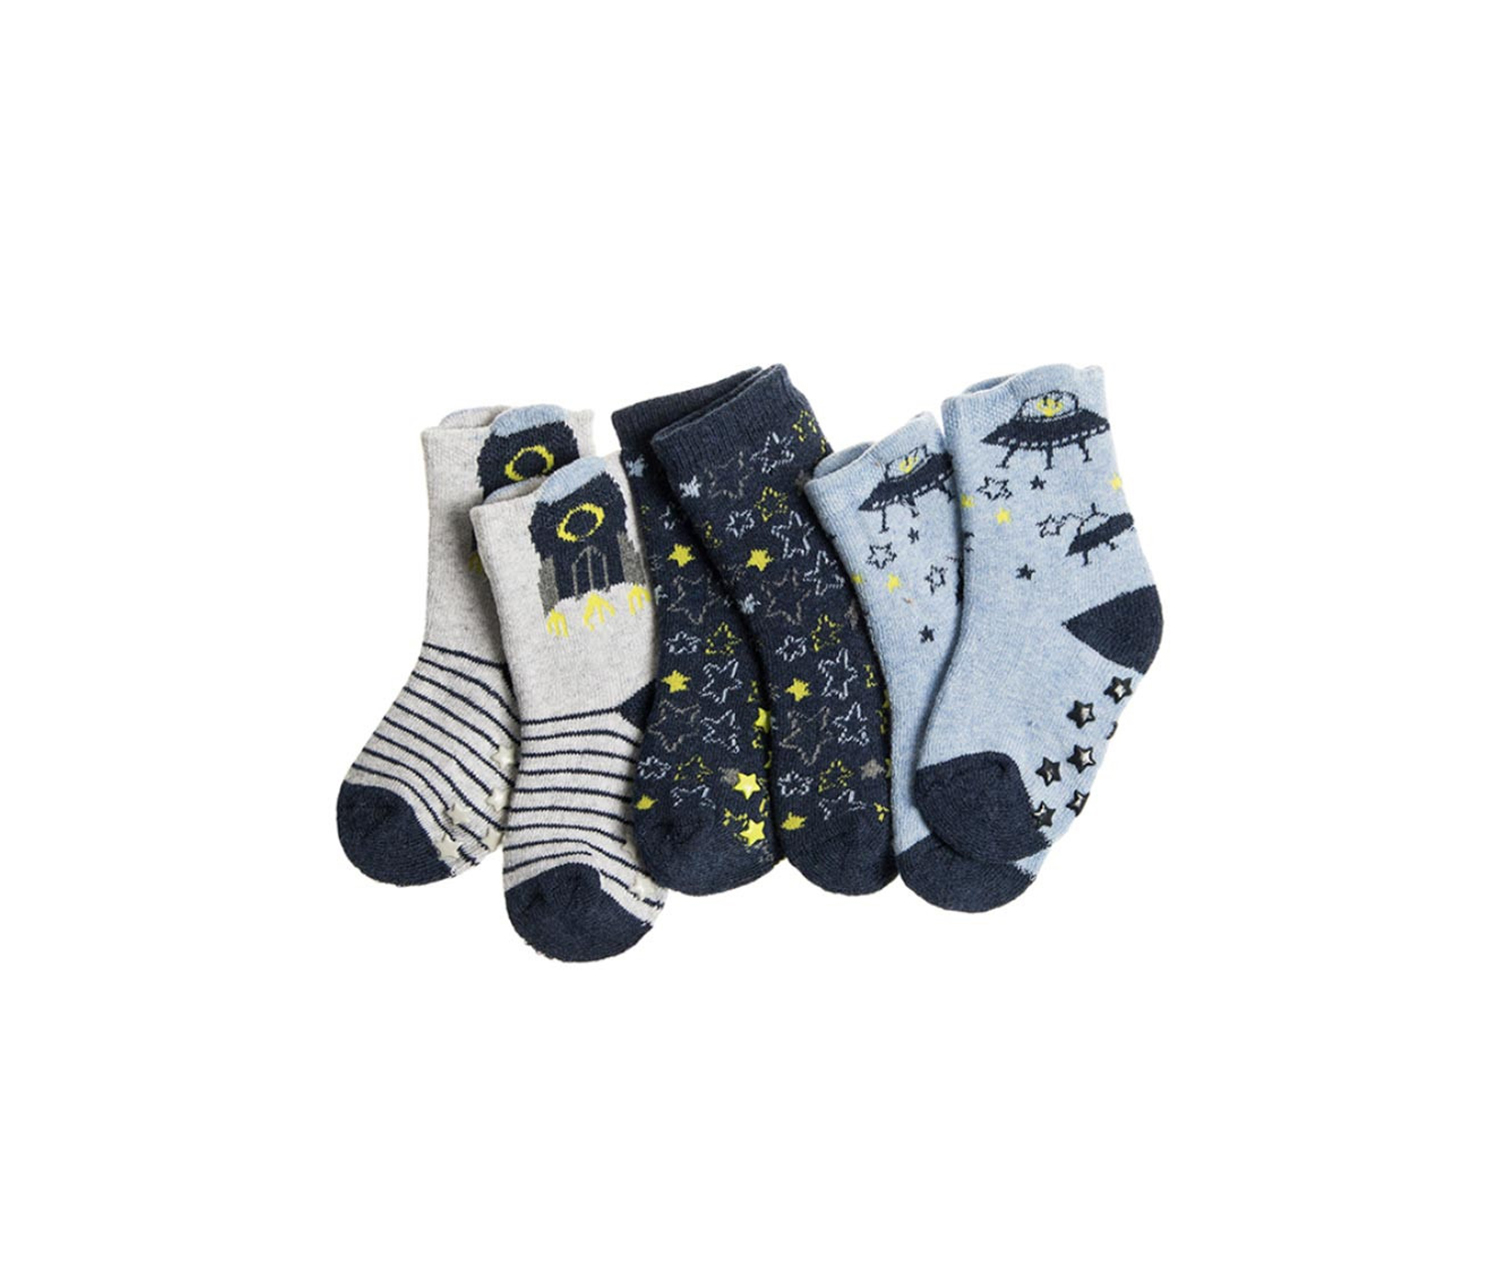 Cool Club Toddler's Socks 3 Pack, Navy/Blue